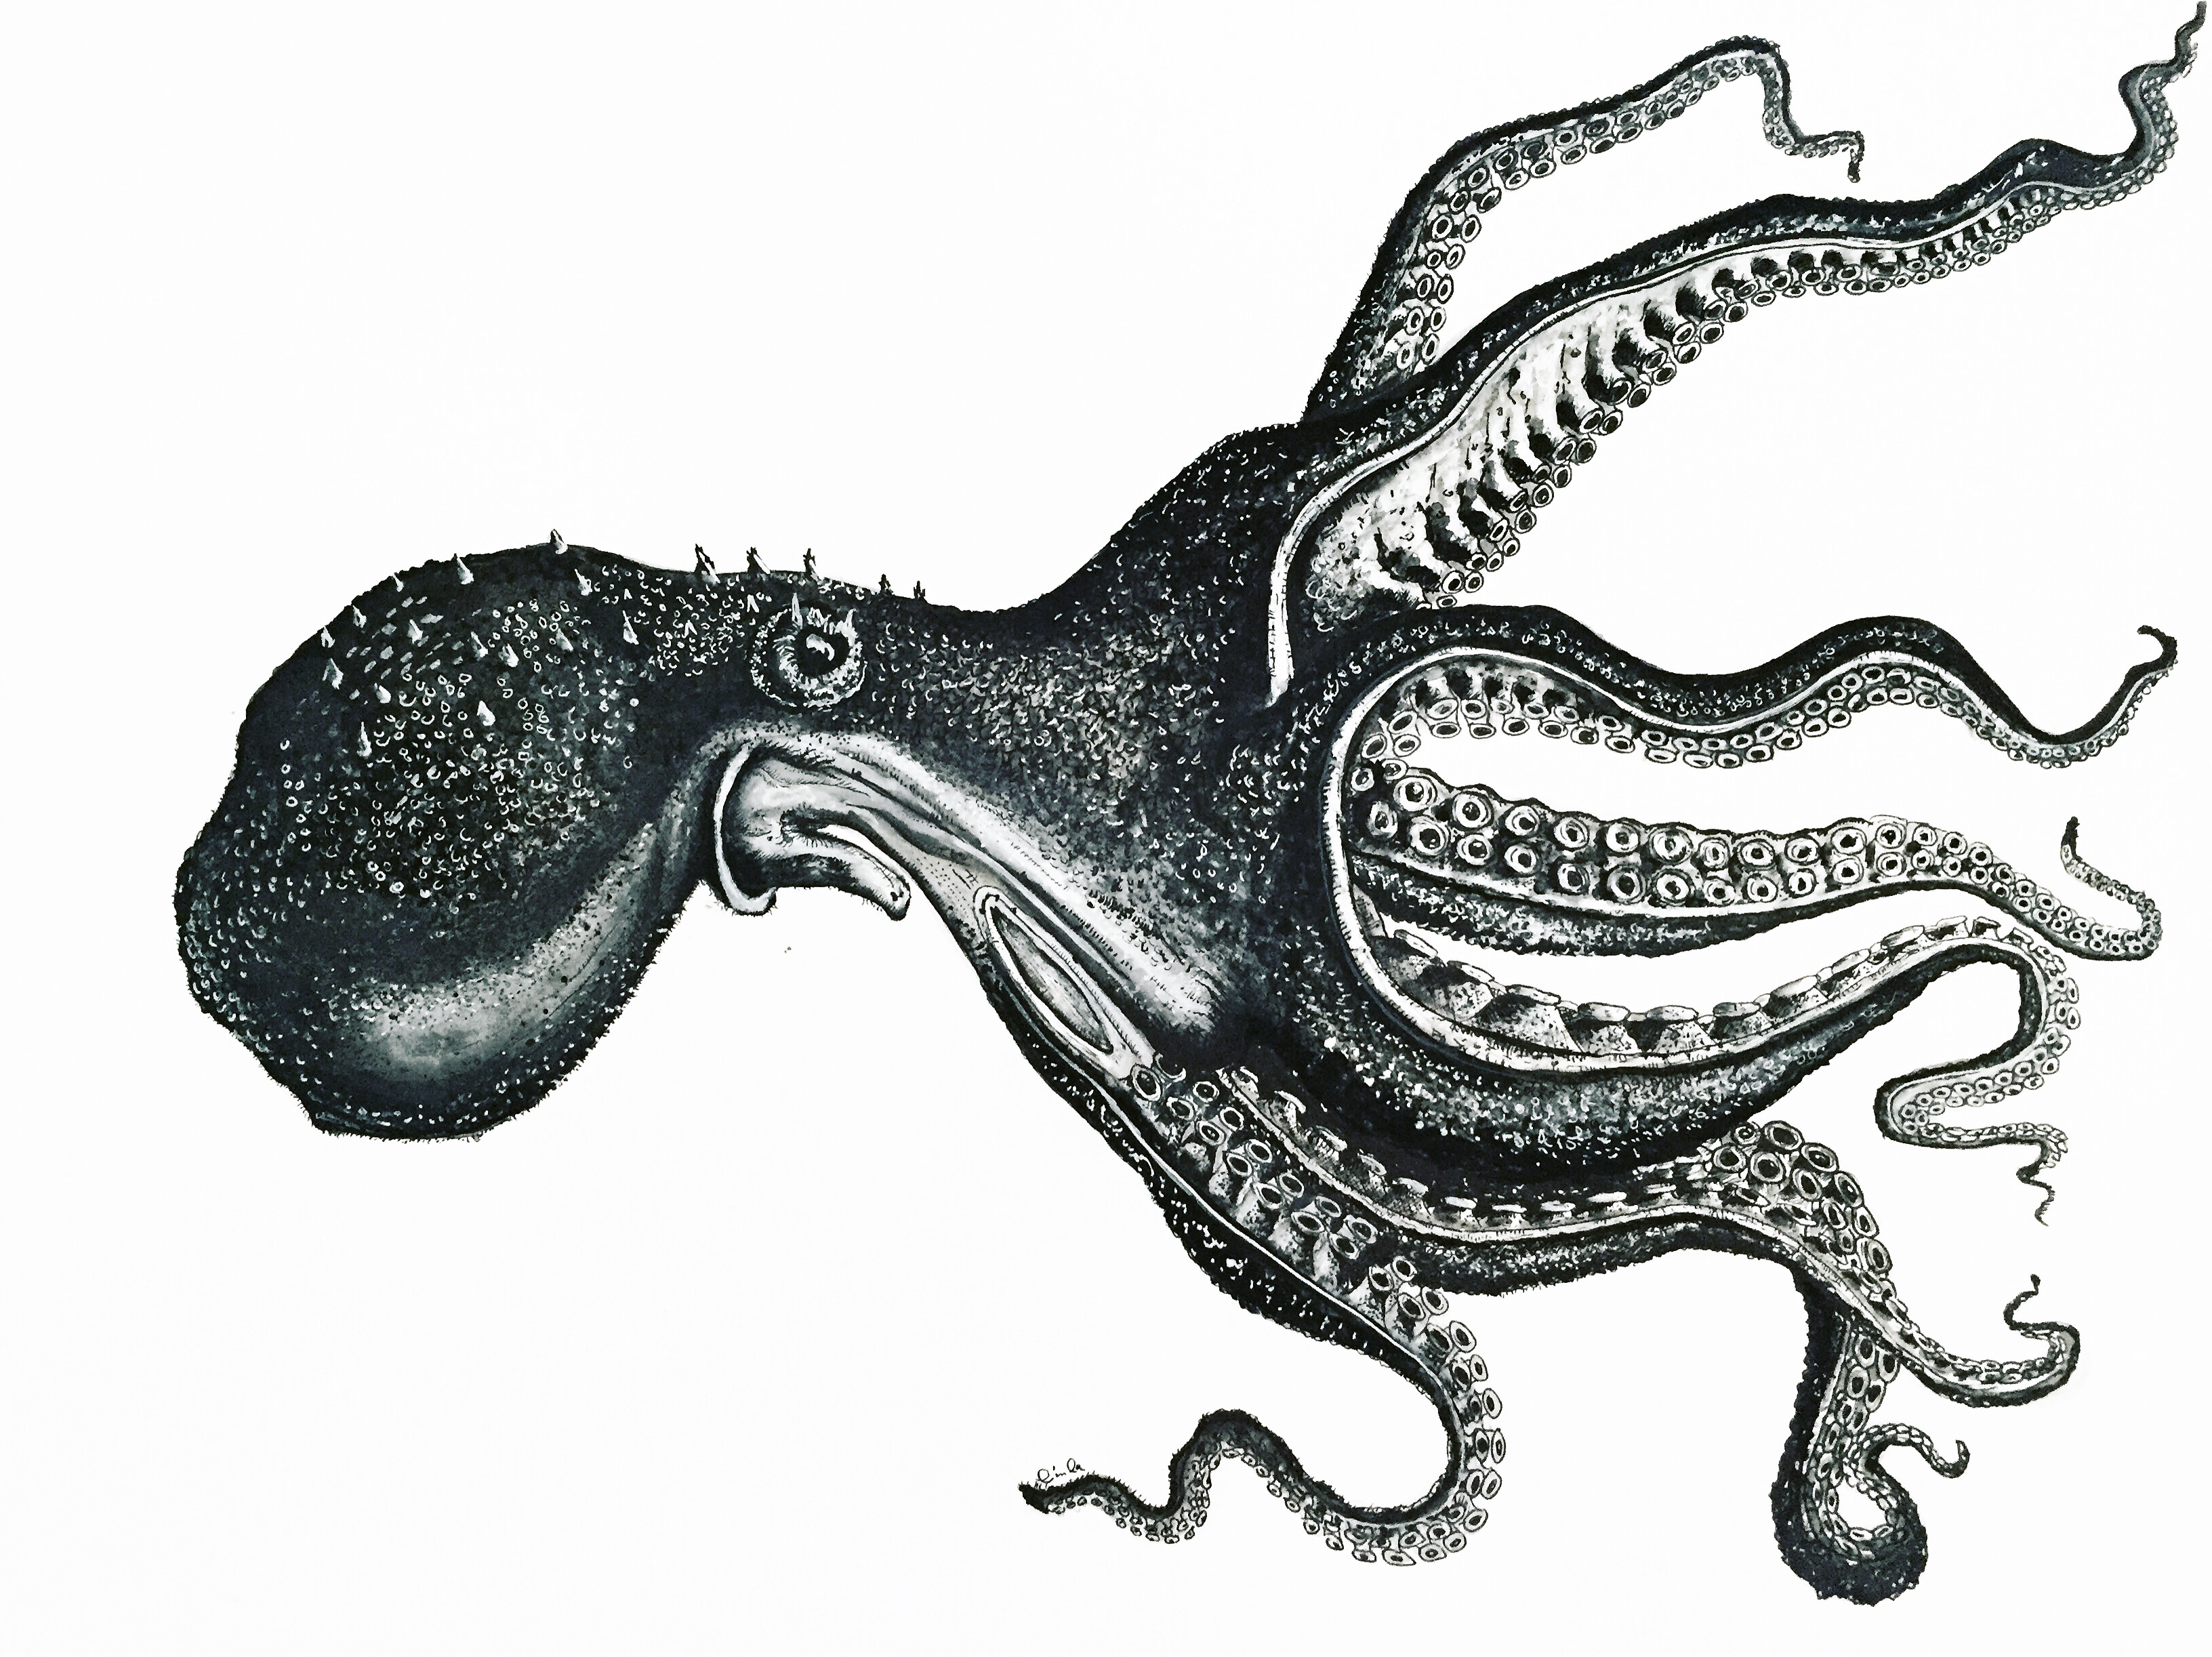 Octopus 2 by LCB